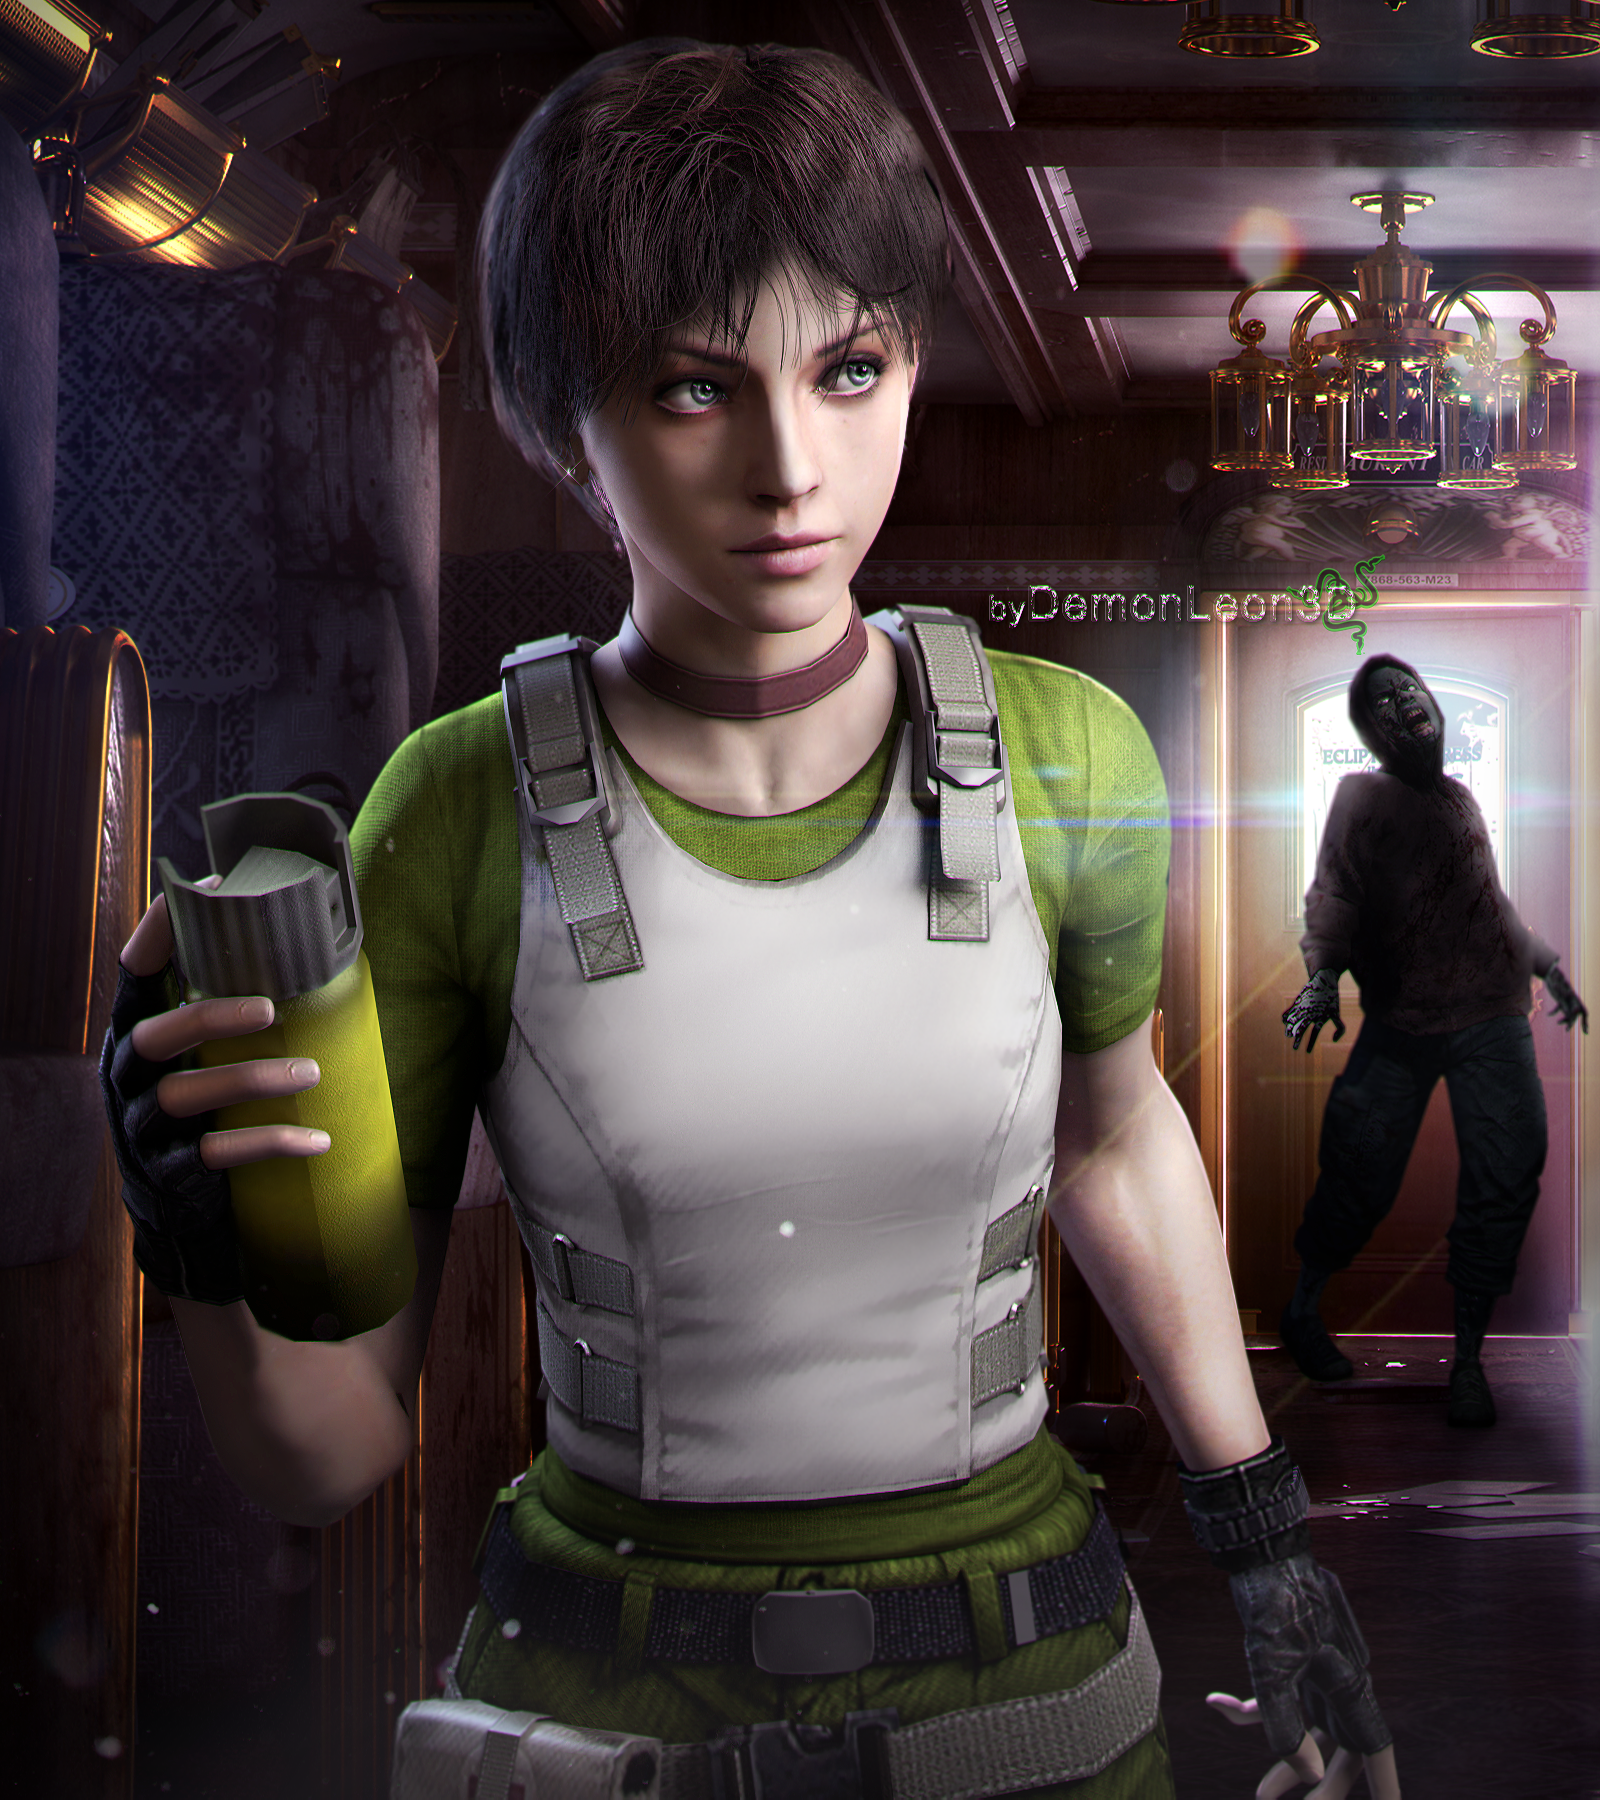 By Chambers: Rebecca Chambers HD By DemonLeon3D On DeviantArt